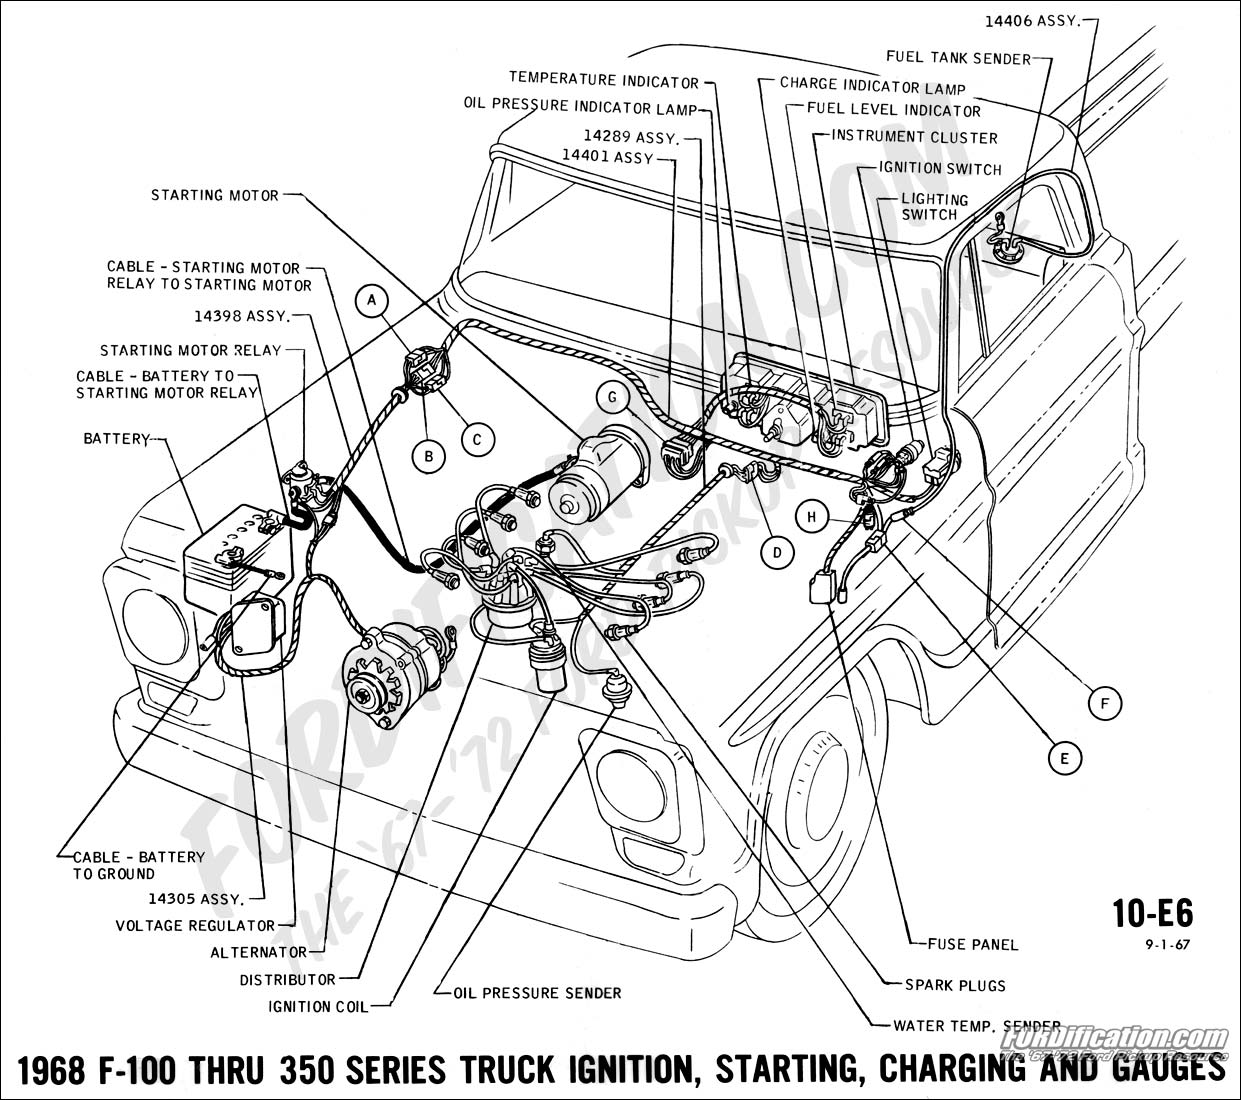 Gm Alternator Wiring Diagram 1996 Archive Of Automotive 4 Wire Tt 523 Trusted Rh Dafpods Co